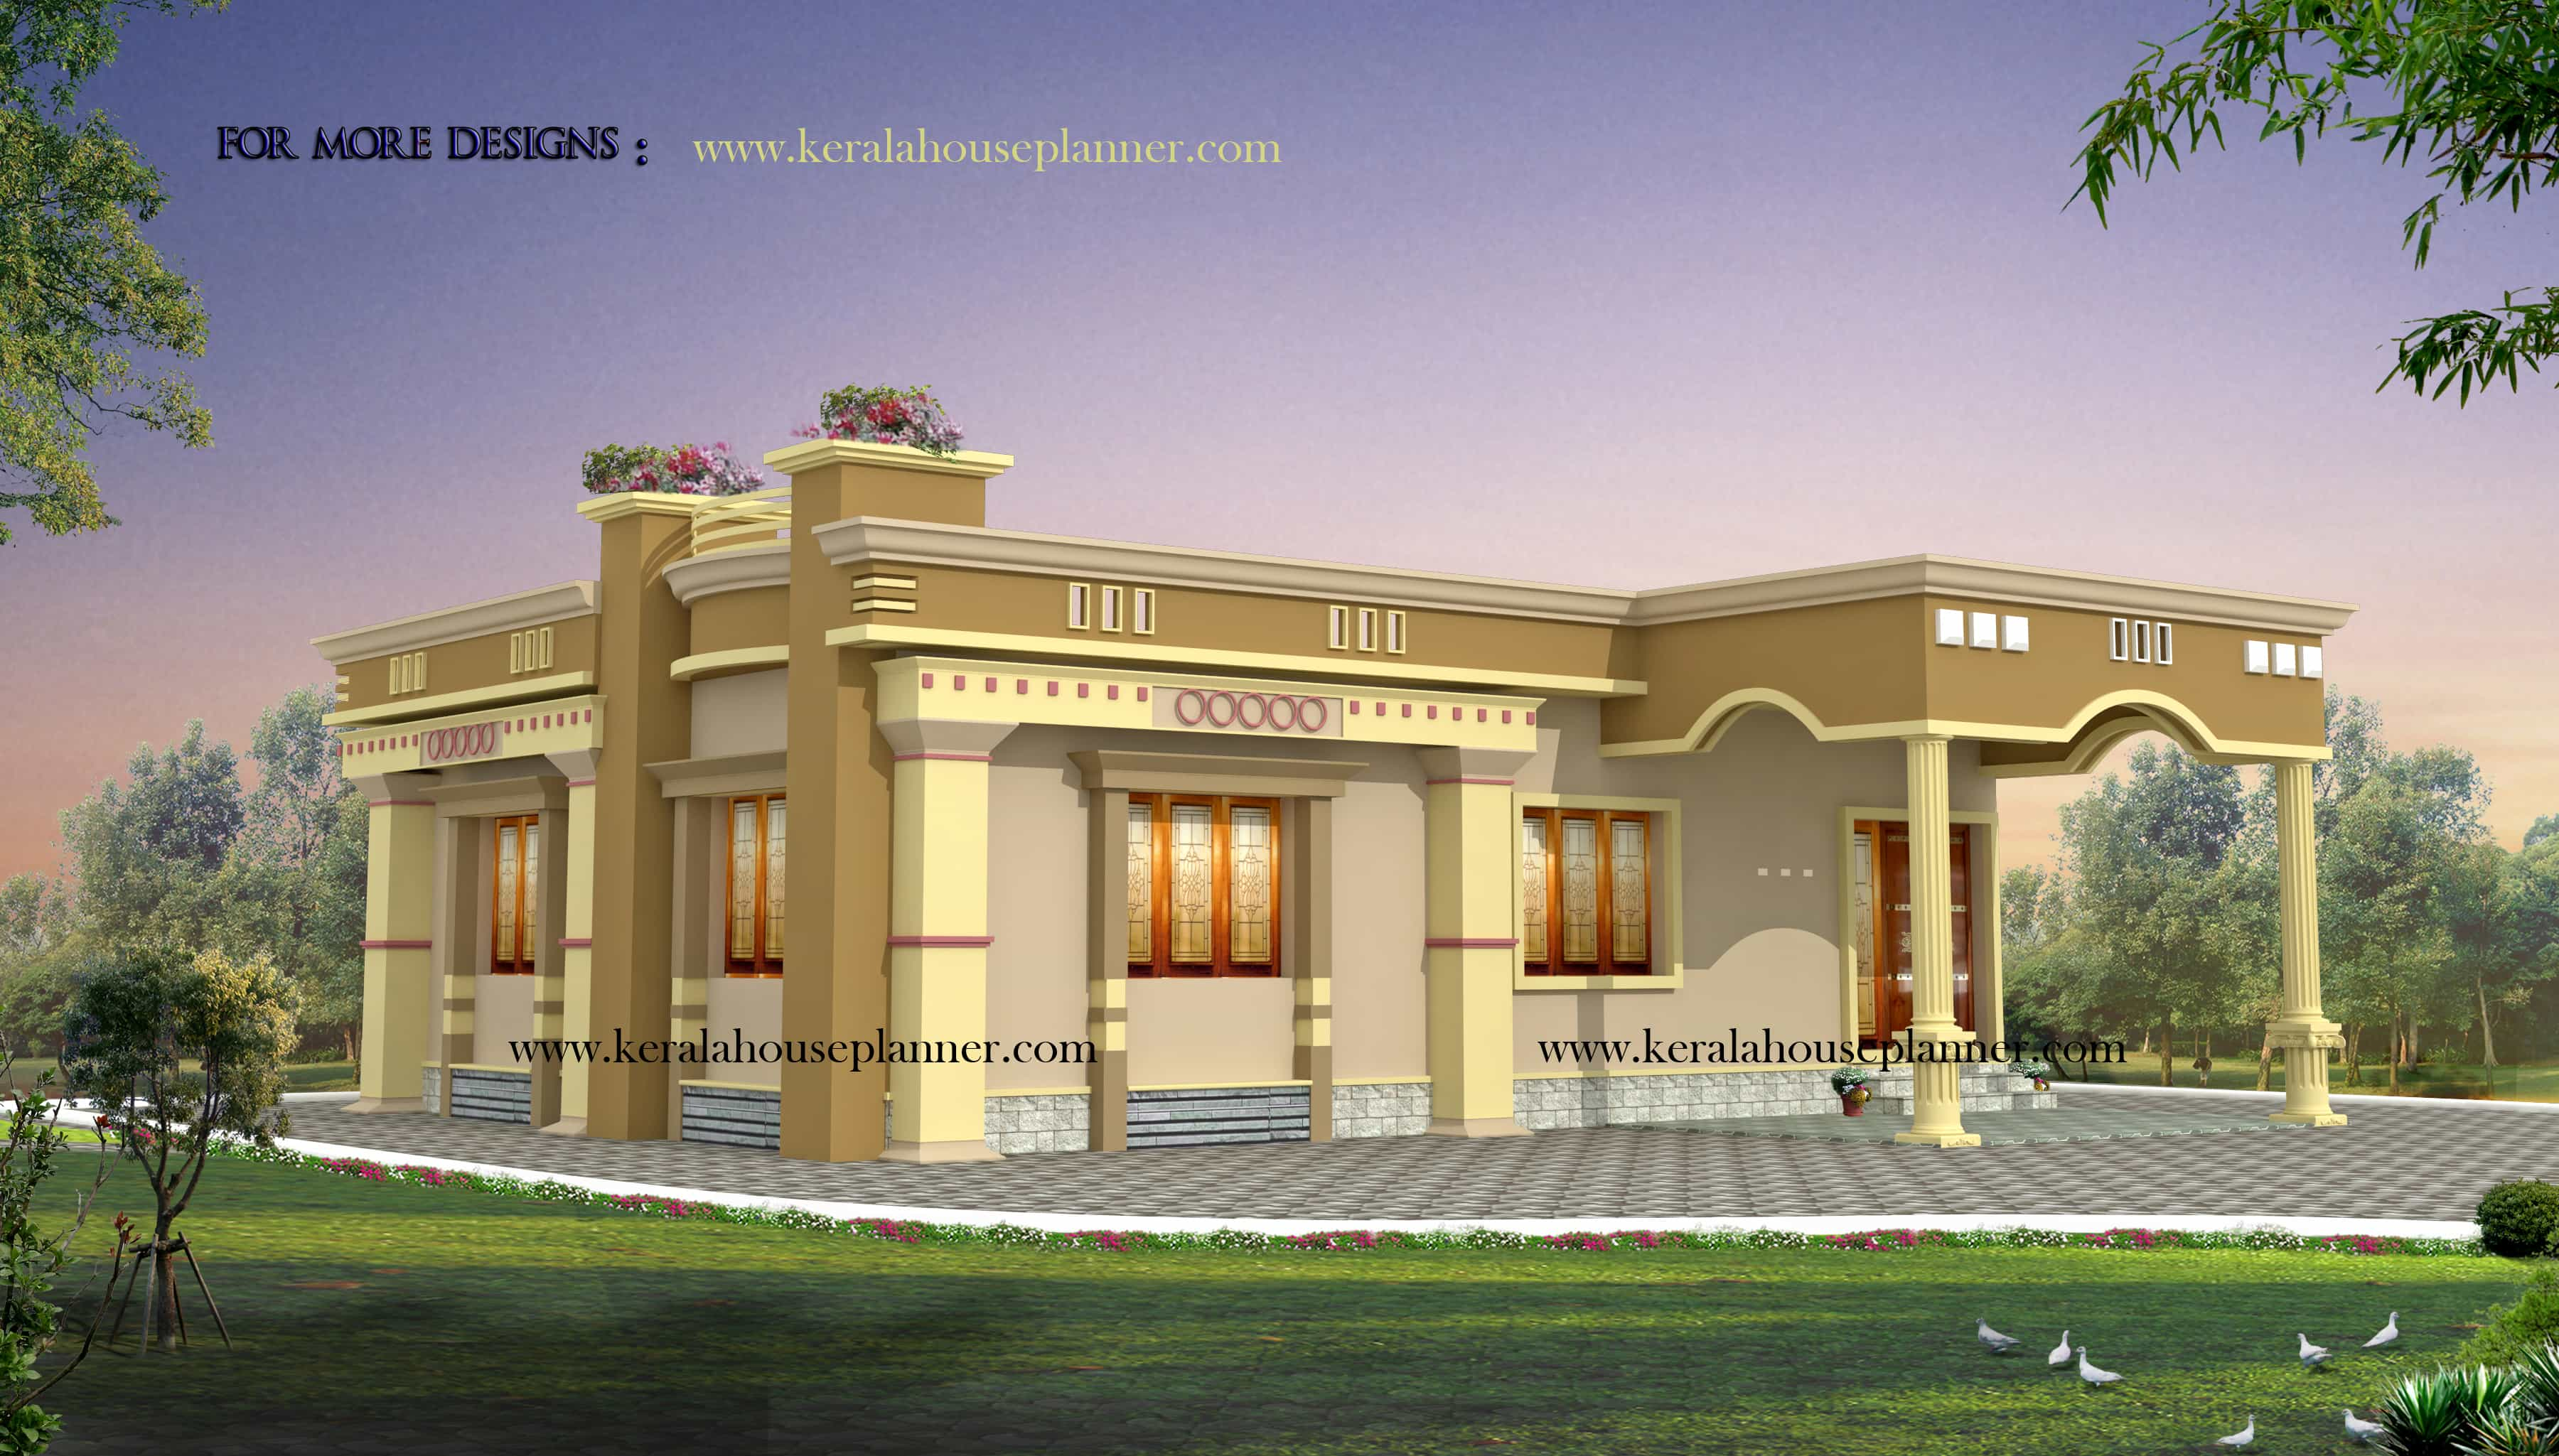 Kerala house plans 1200 sq ft with photos khp for Kerala house model plan